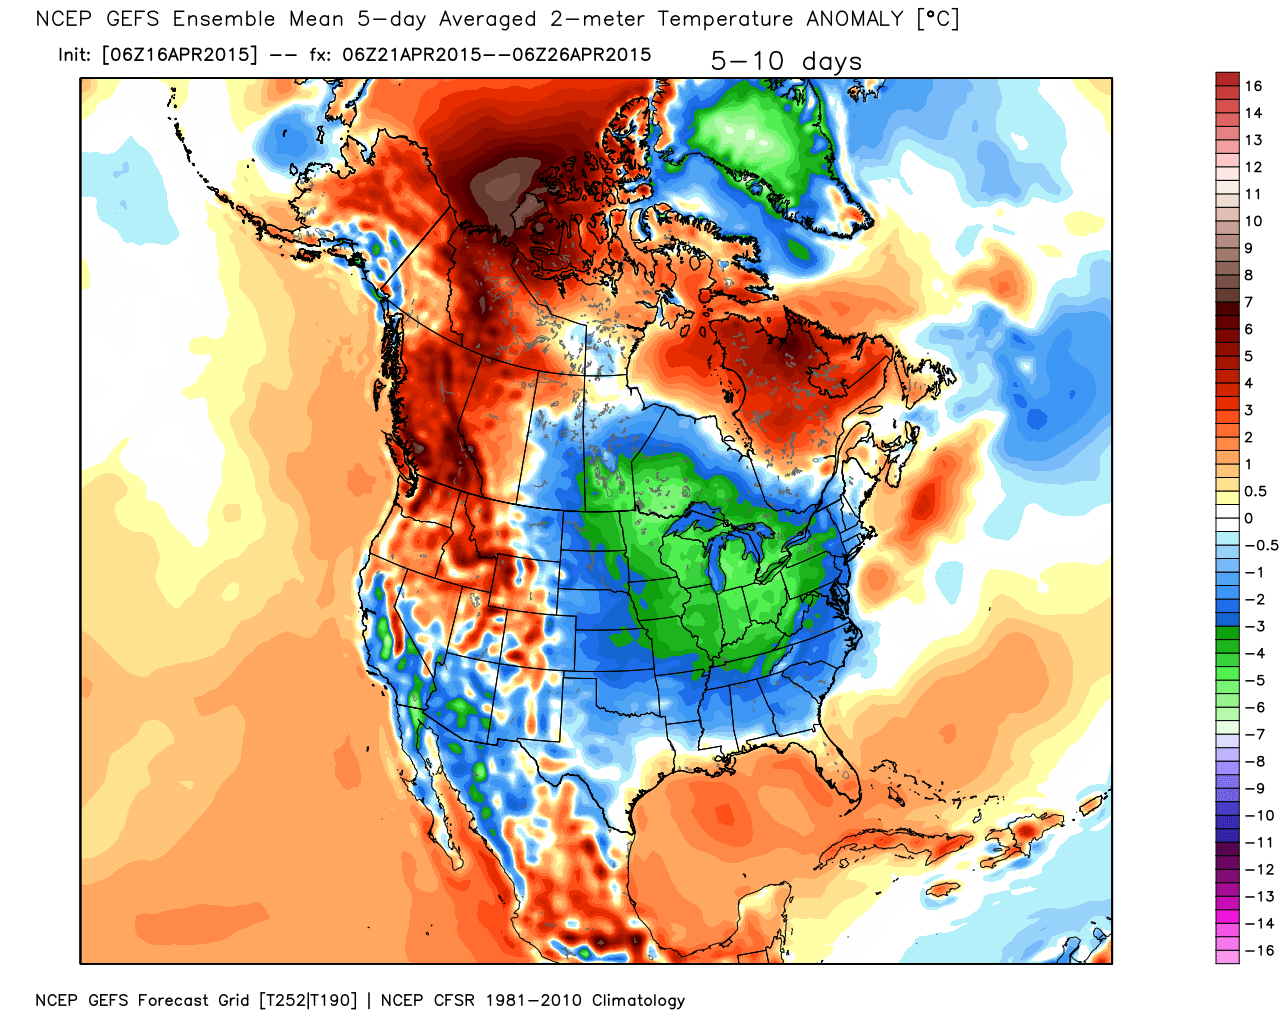 5 Day Temperature Anomaly For April 21 through April 26